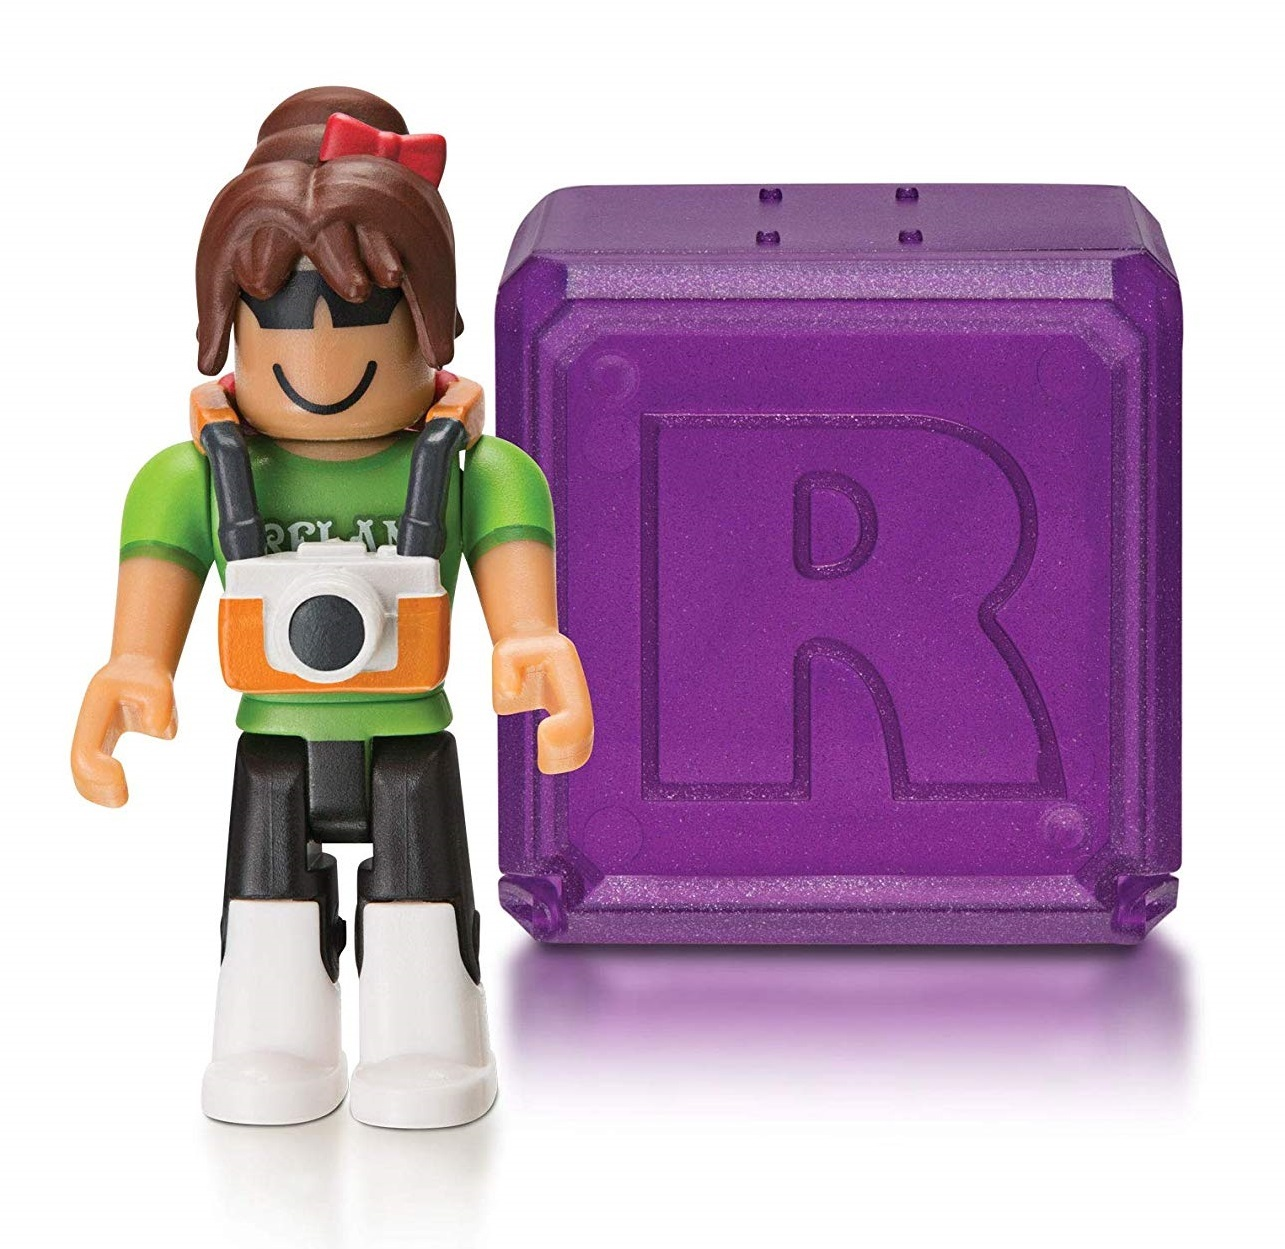 Details About Roblox Celebrity Collection Series 3 Mystery Pack Purple Cube - Roblox Celebrity Mystery Figure Series 3 Blind Box